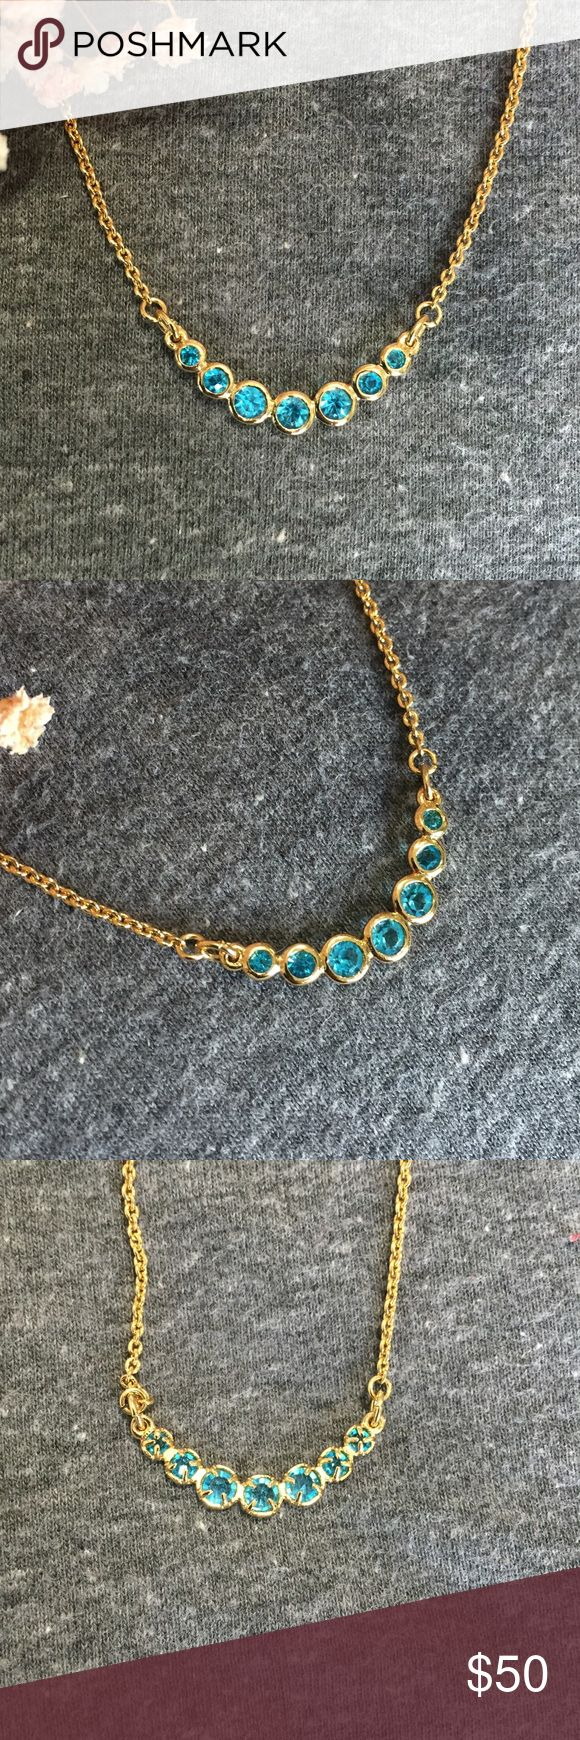 NWT Kate Spade Dainty Sparkler Teal Necklace Simple and sparkly this pretty sky blue and gold necklace is the perfect addition to any outfit! Small round crystals bring to mind a line of perfect bubbles! Perfect condition, never worn! kate spade Jewelry Necklaces